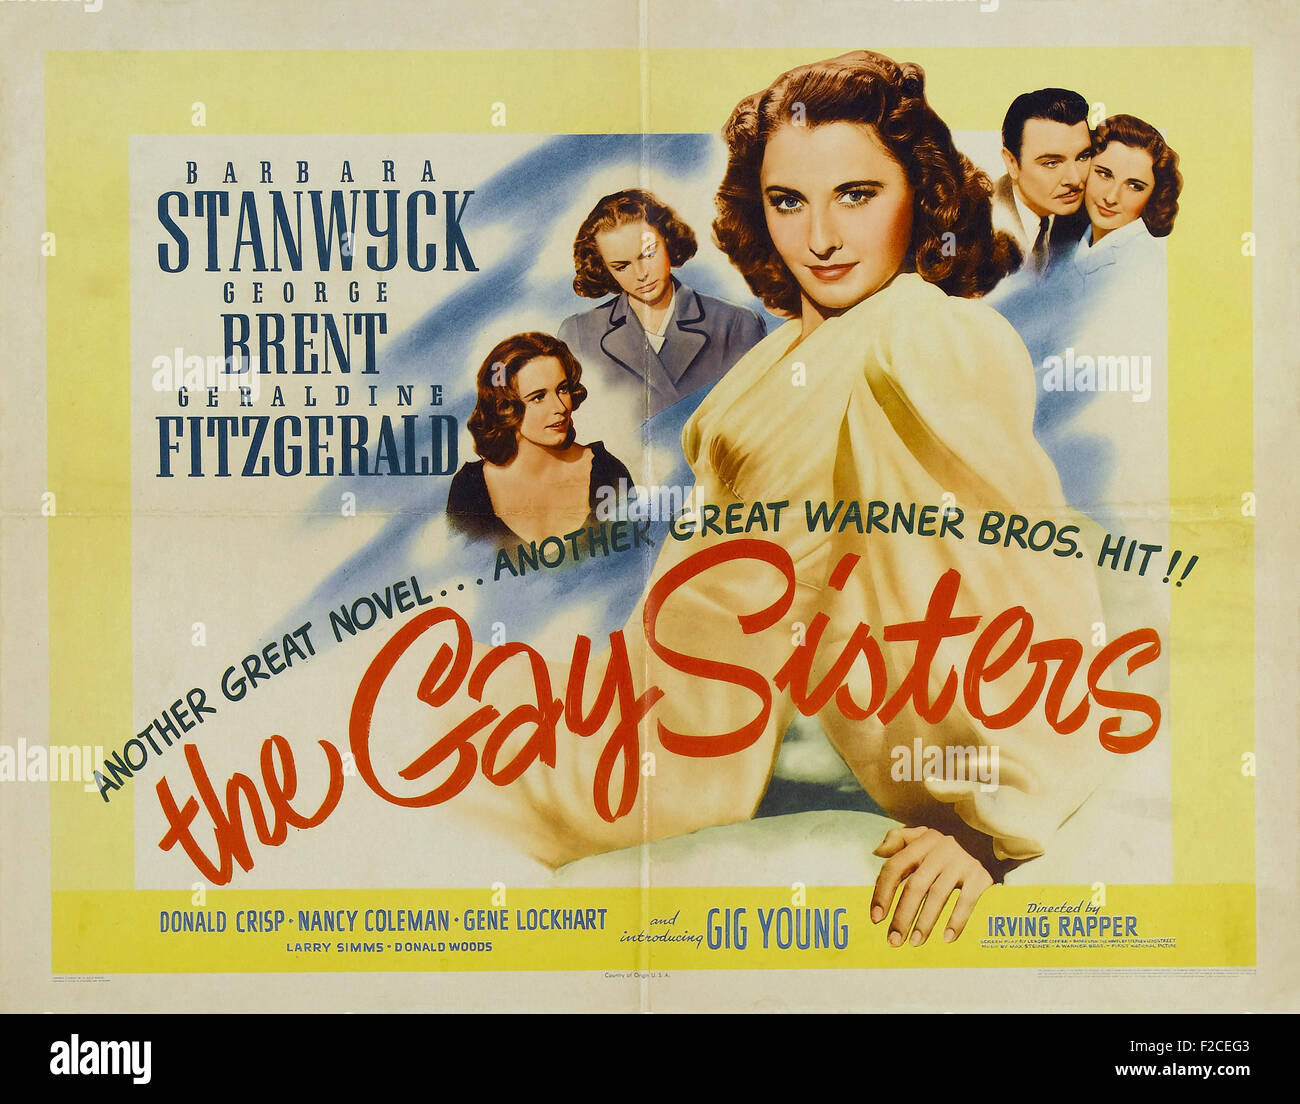 Gay Sisters, The  02048  - Movie Poster - Stock Image